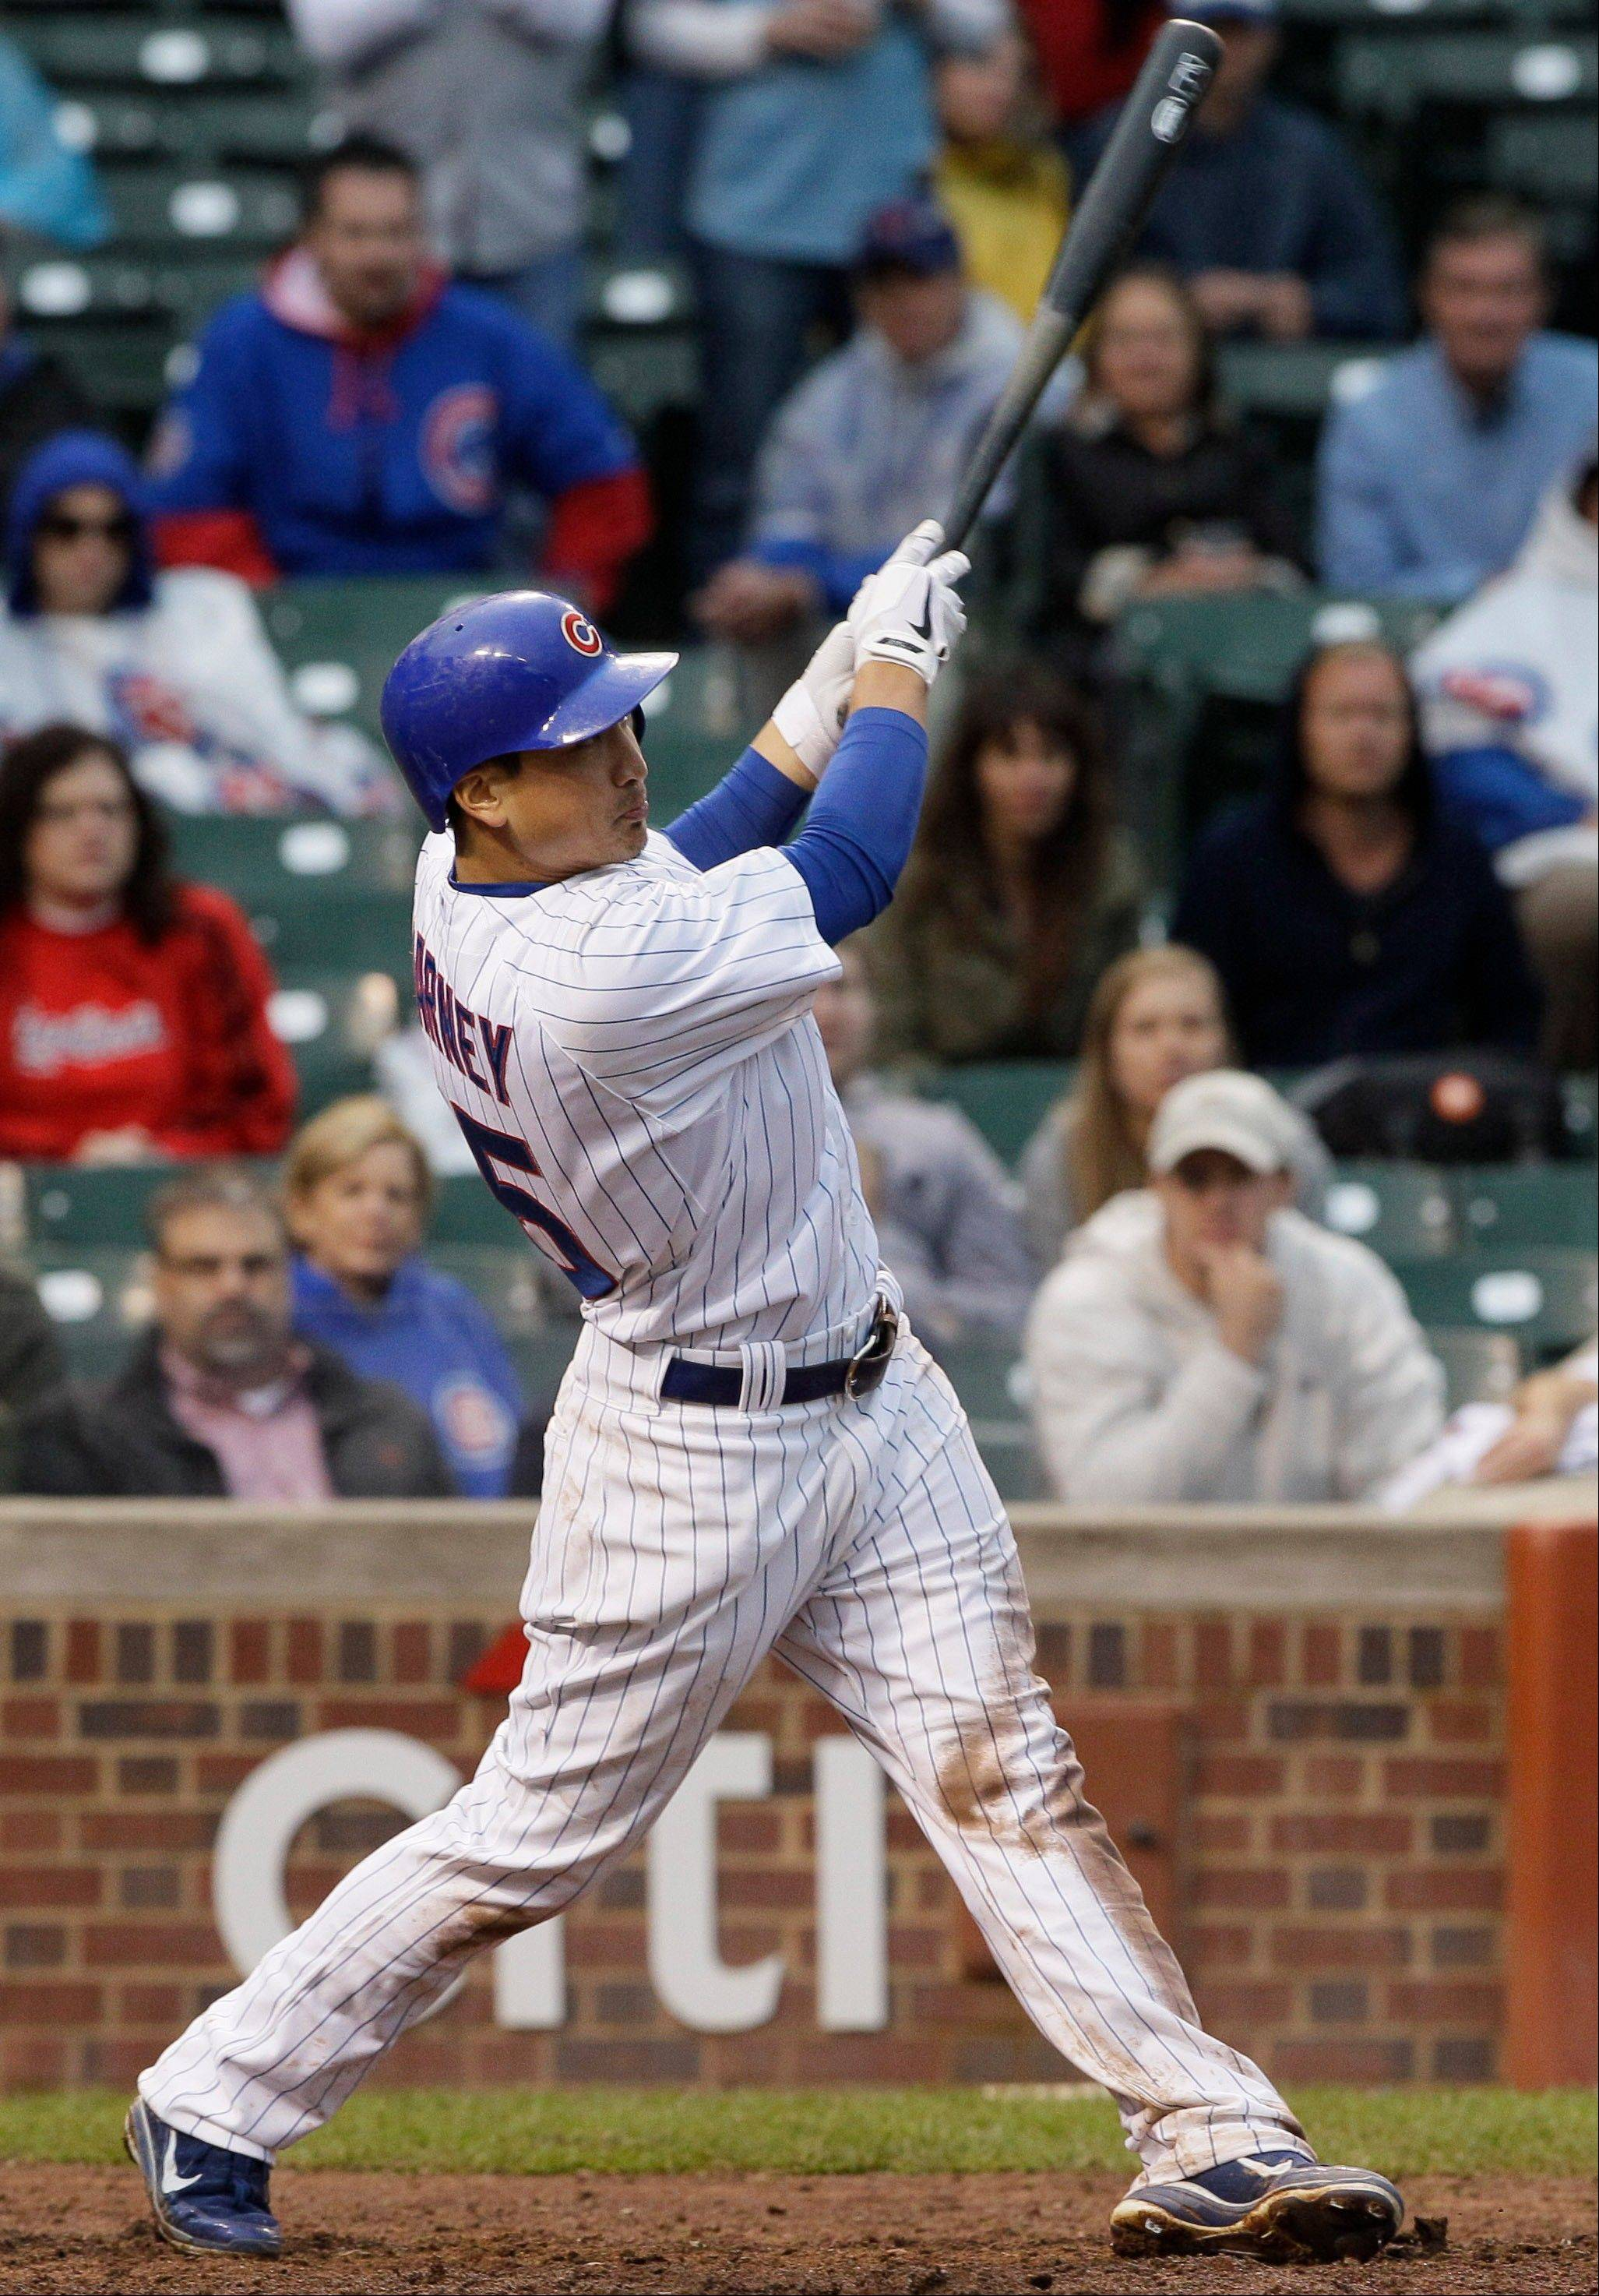 Chicago Cubs' Darwin Barney hits a two-run home run during the ninth inning of a baseball game against the St. Louis Cardinals in Chicago, Friday, Sept. 21, 2012. The Cubs won 5-4.